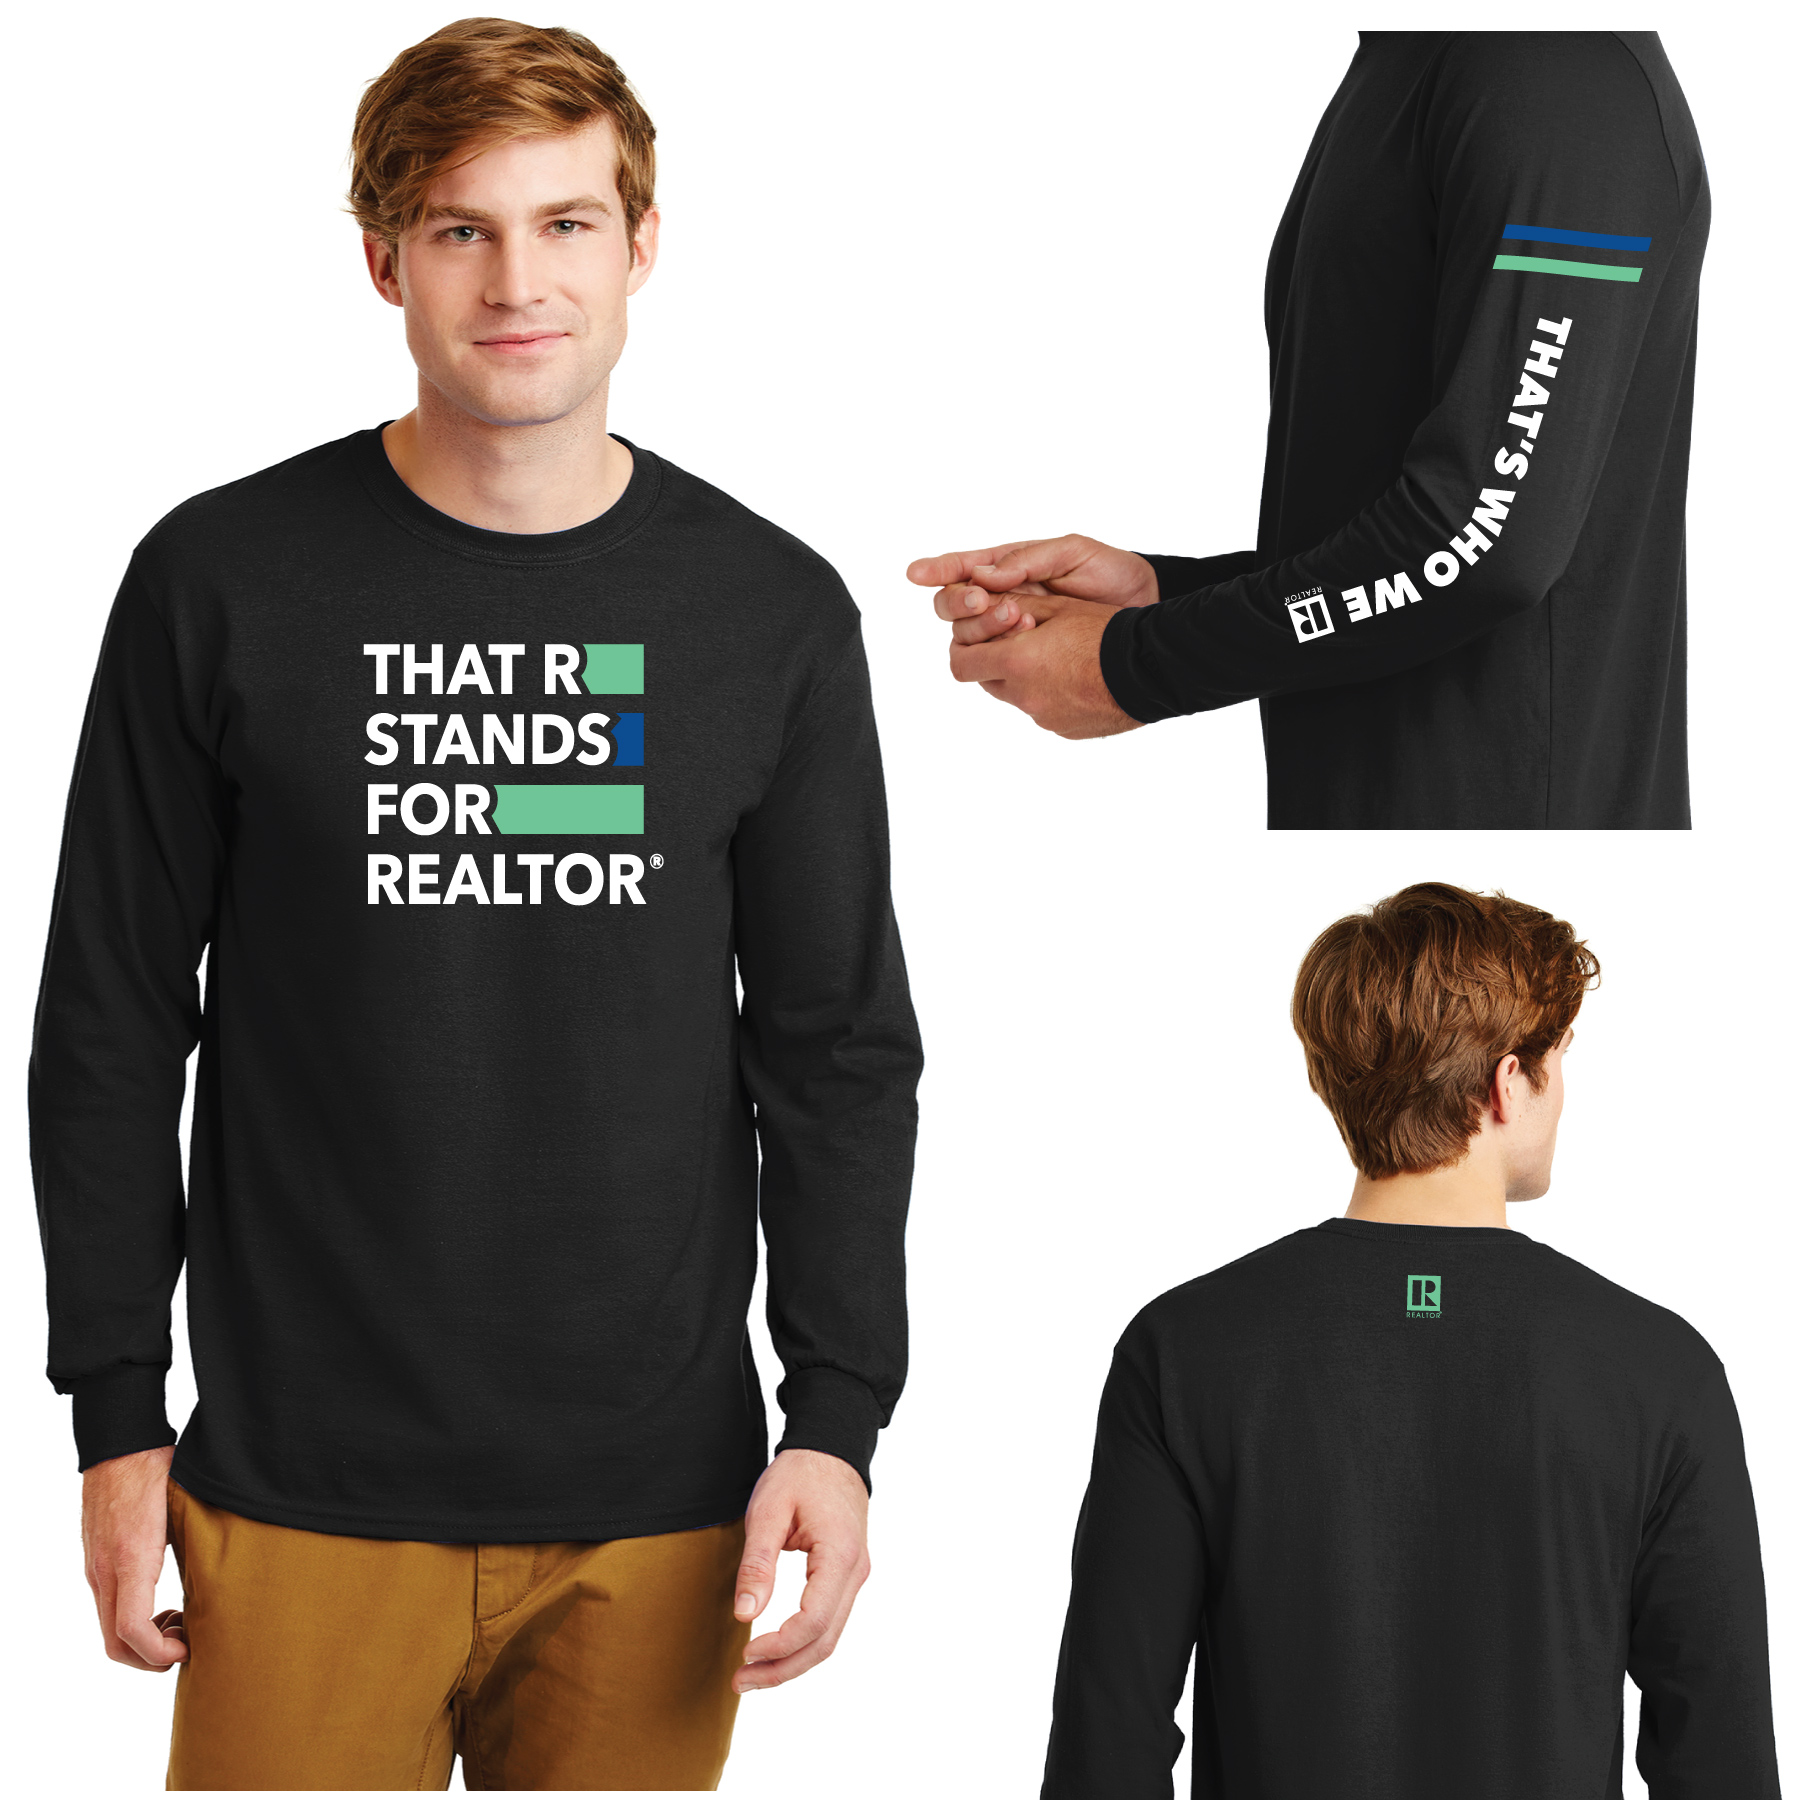 """That R Stands for REALTOR®"" Long Sleeve Value Tee Shirt TRSFR,twwr,ThatsWhoWeR,Thats,TWWR,ThatWho,ThatsWho,Twwr,Thats,Whos,We,Ares,Tees,T-shirt,Tee,Casual,Values,Tees,NewEra,Longs,Sleeves"